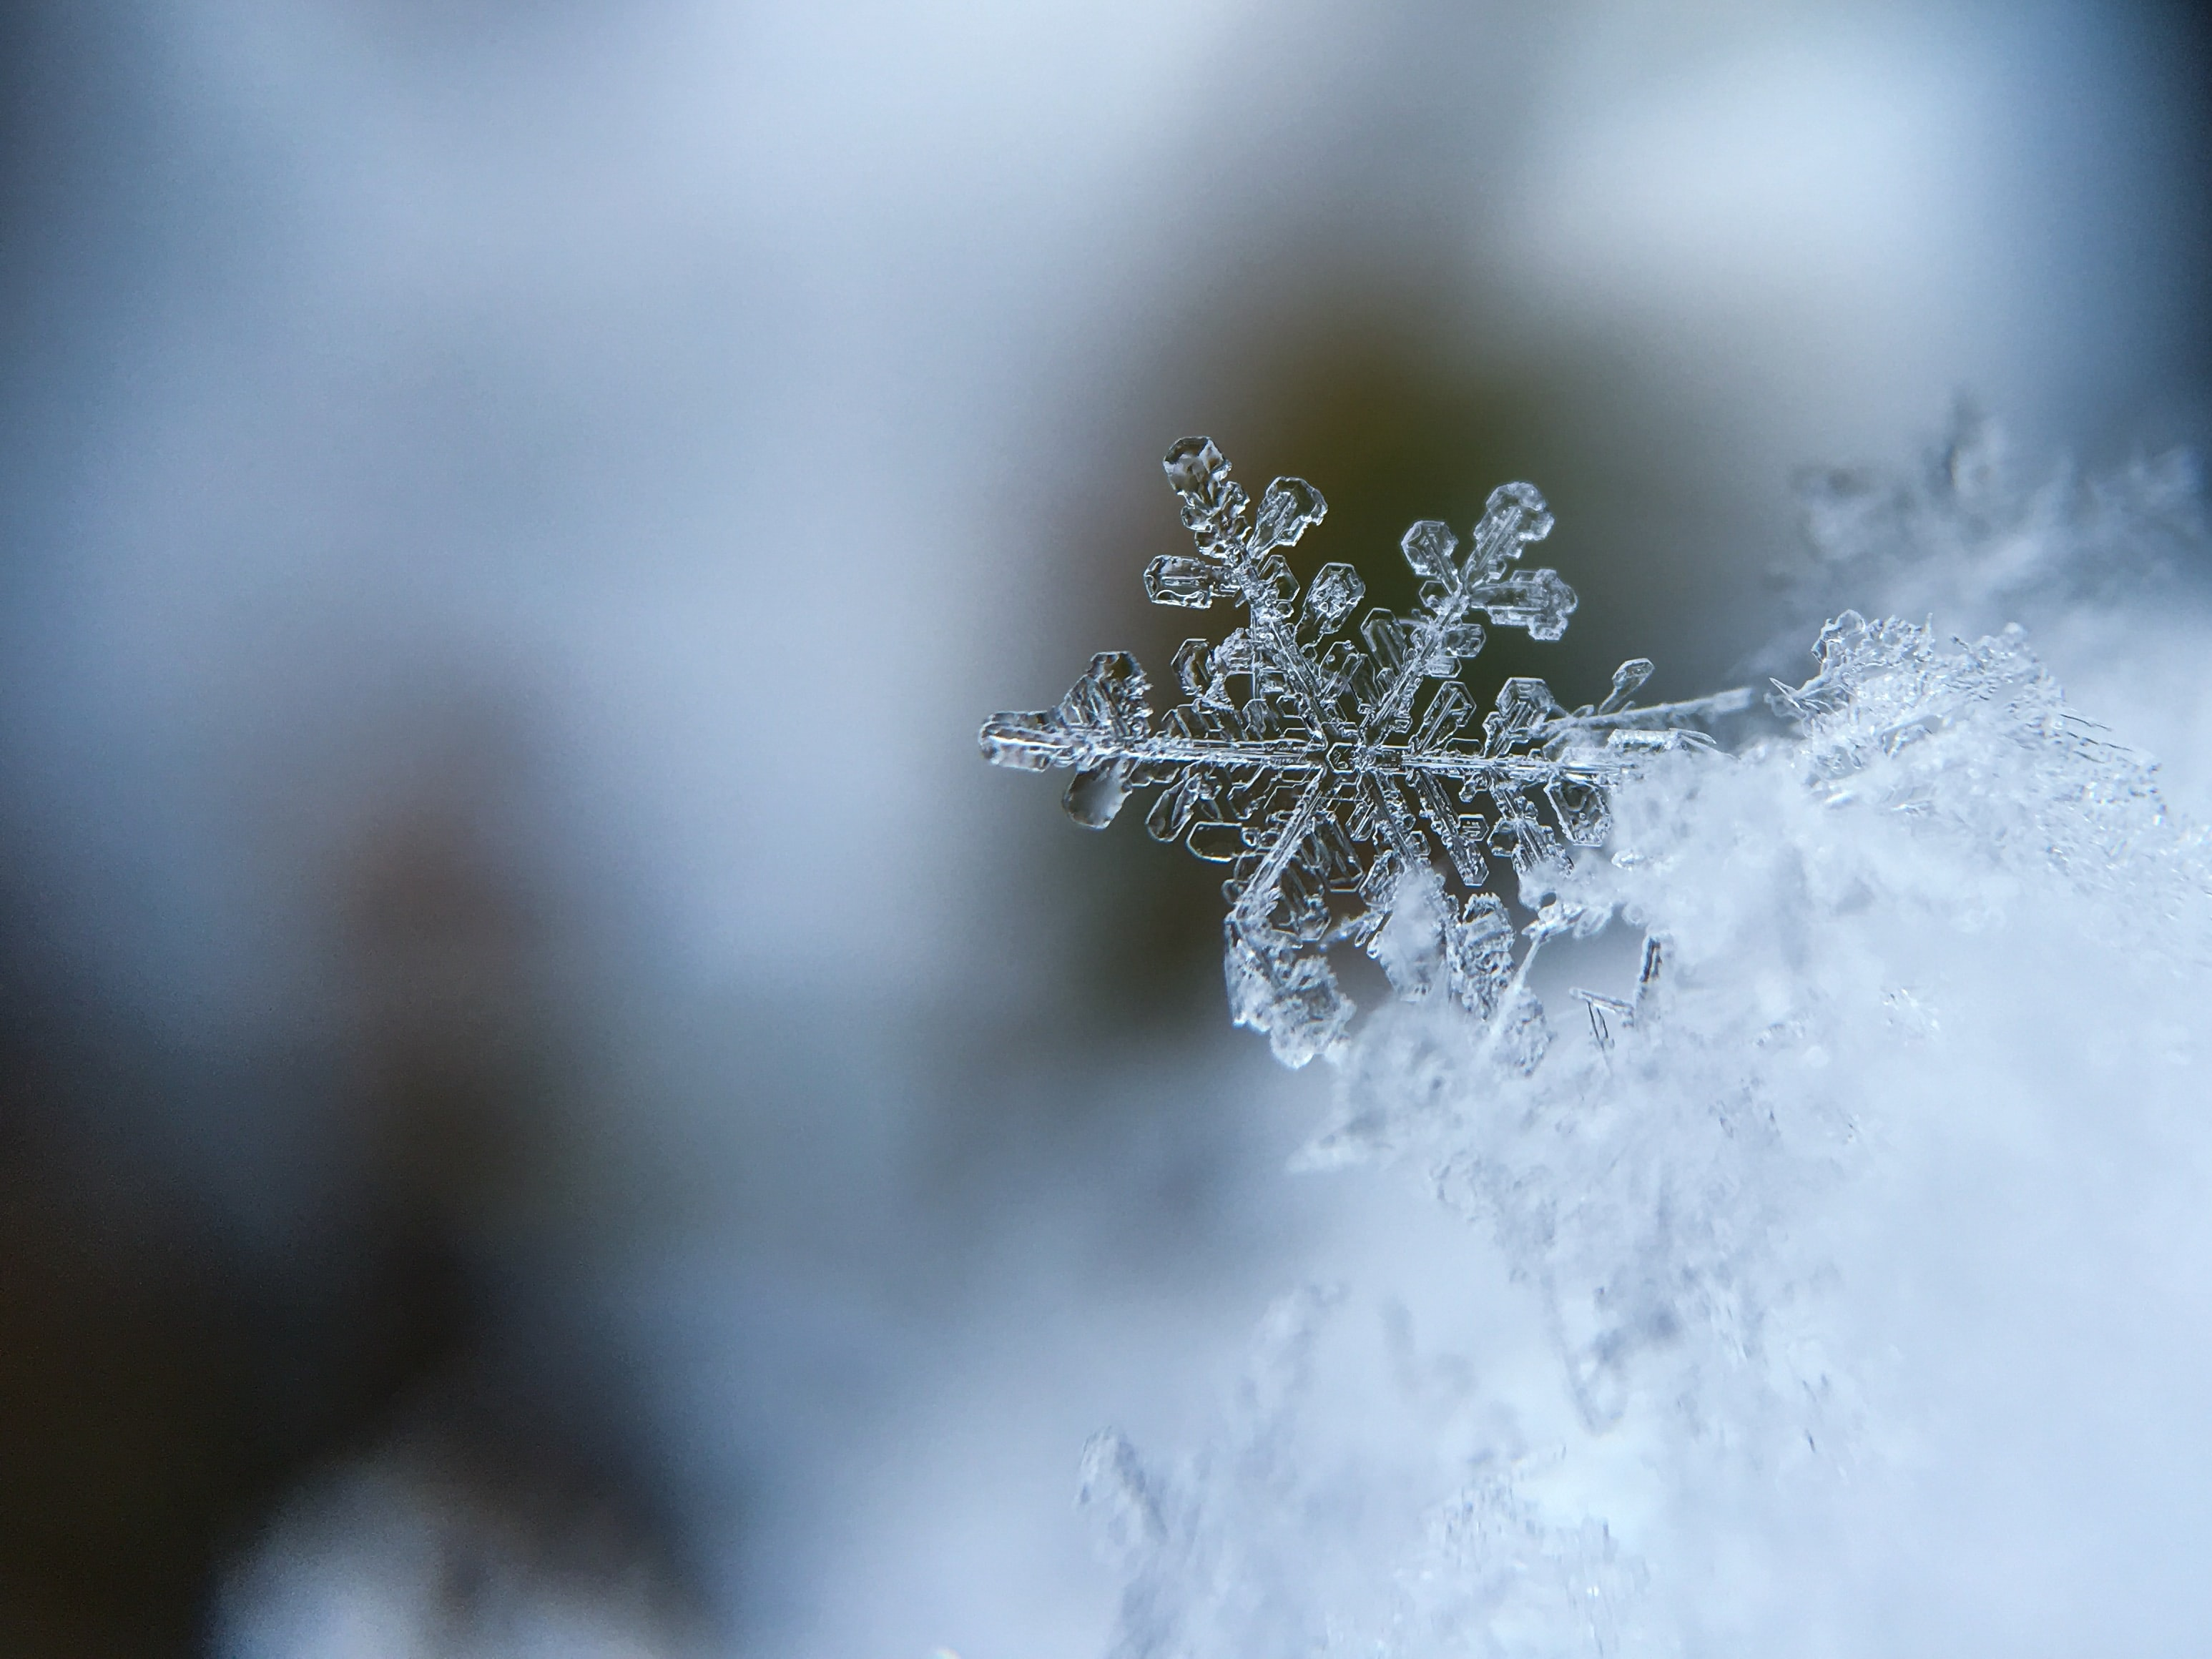 focused photo of a snow flake